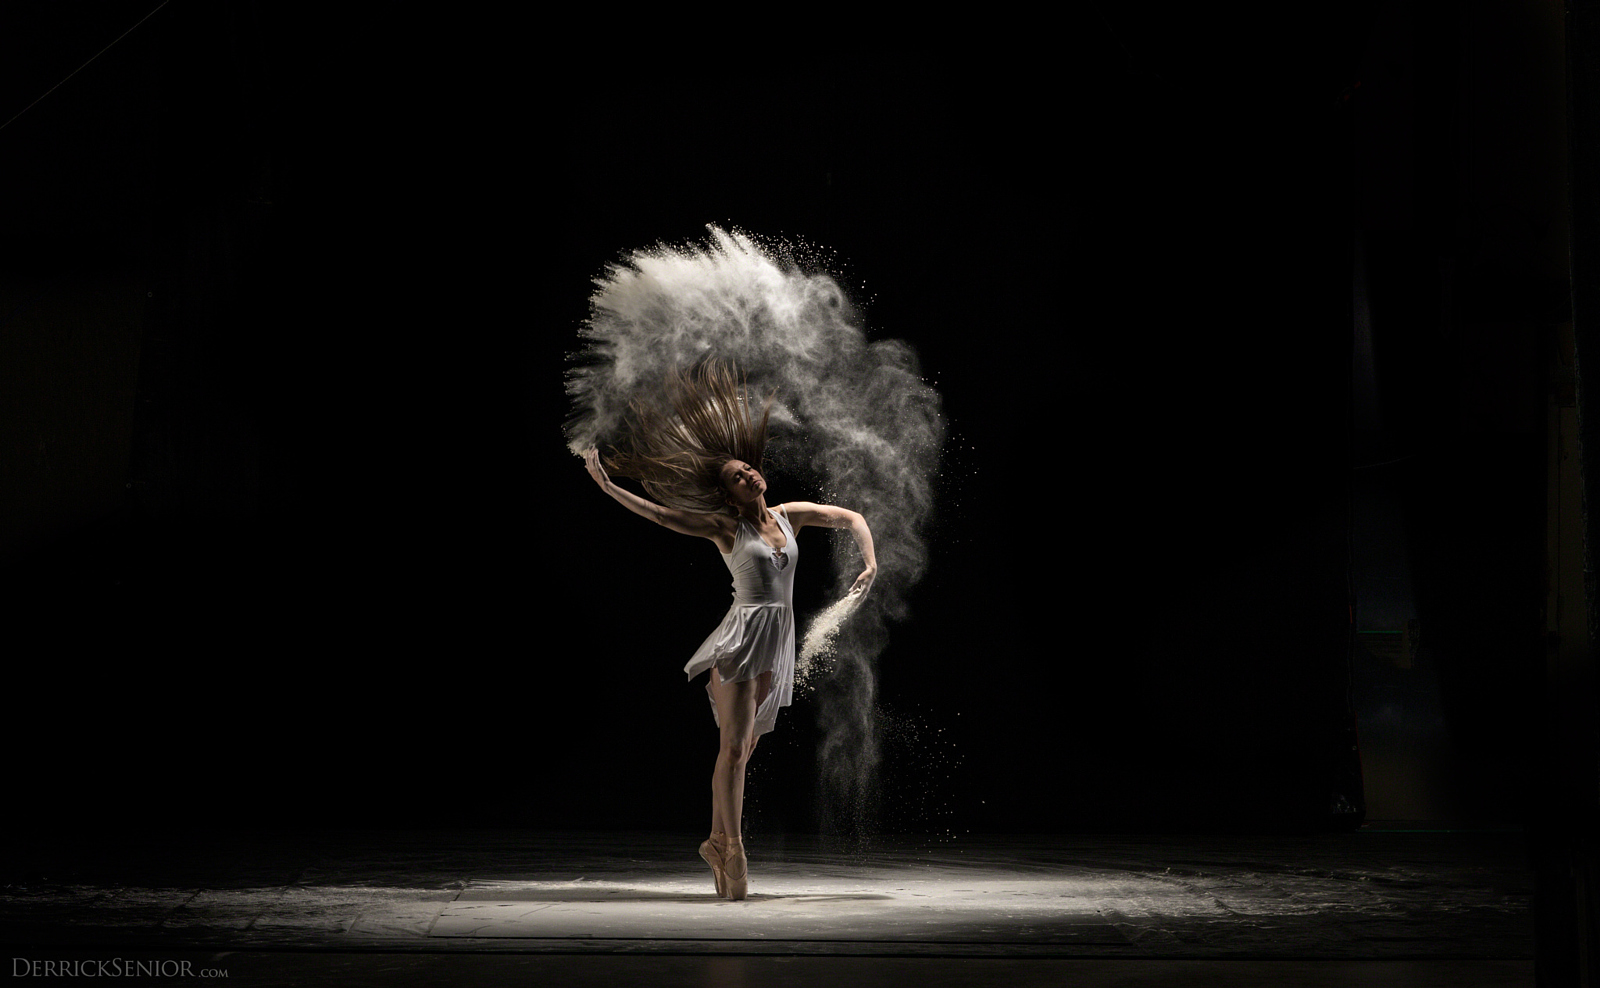 15 Explosive Dancer Portraits by Derrick Senior